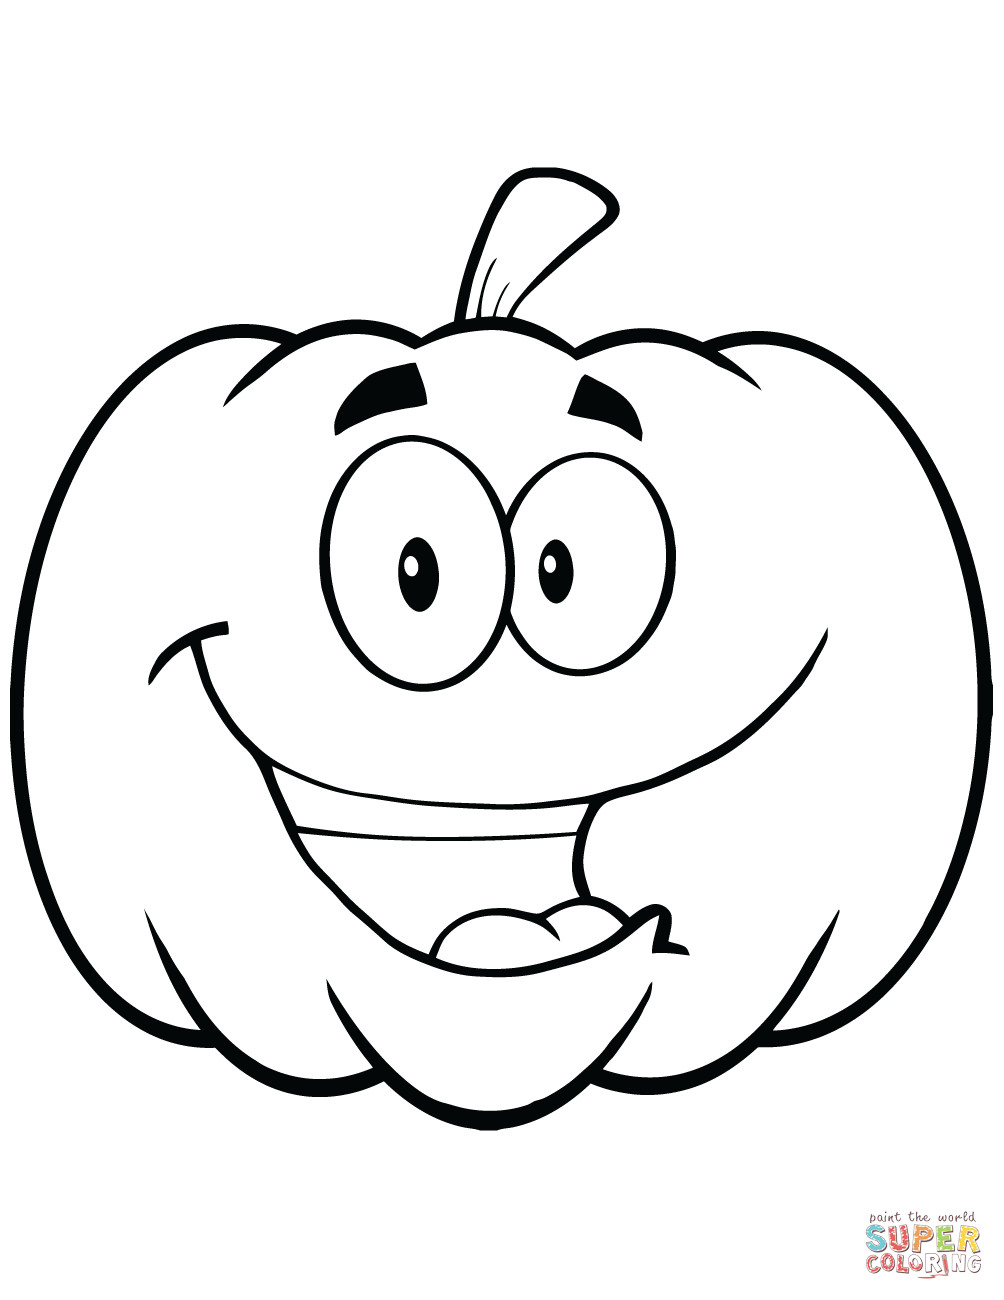 1004x1300 Cartoon Halloween Pumpkin Coloring Page Free Printable Pages